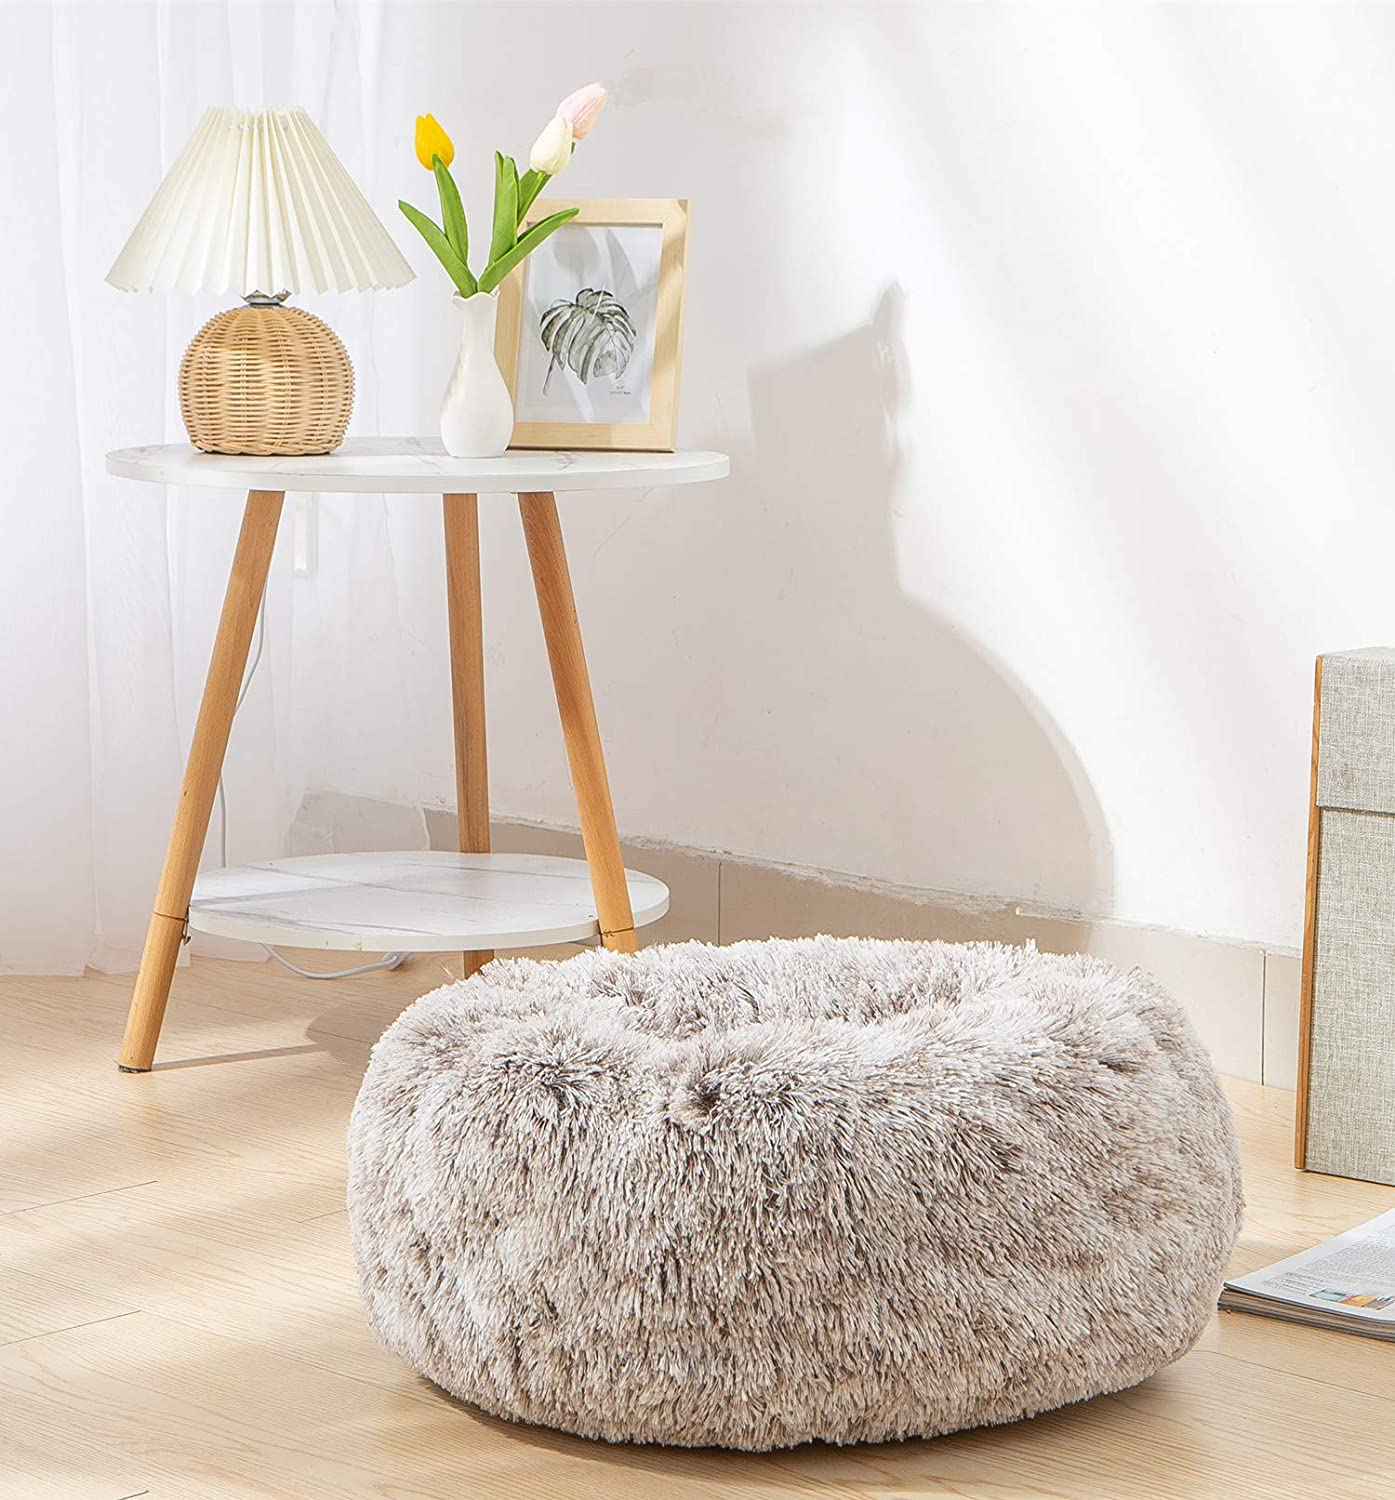 TORMAYS Pet Beds Donut Round Cushion Dog Bed Marshmellow Faux Fur Cuddler Calming Fluffy Comfy Furry Cat Bed